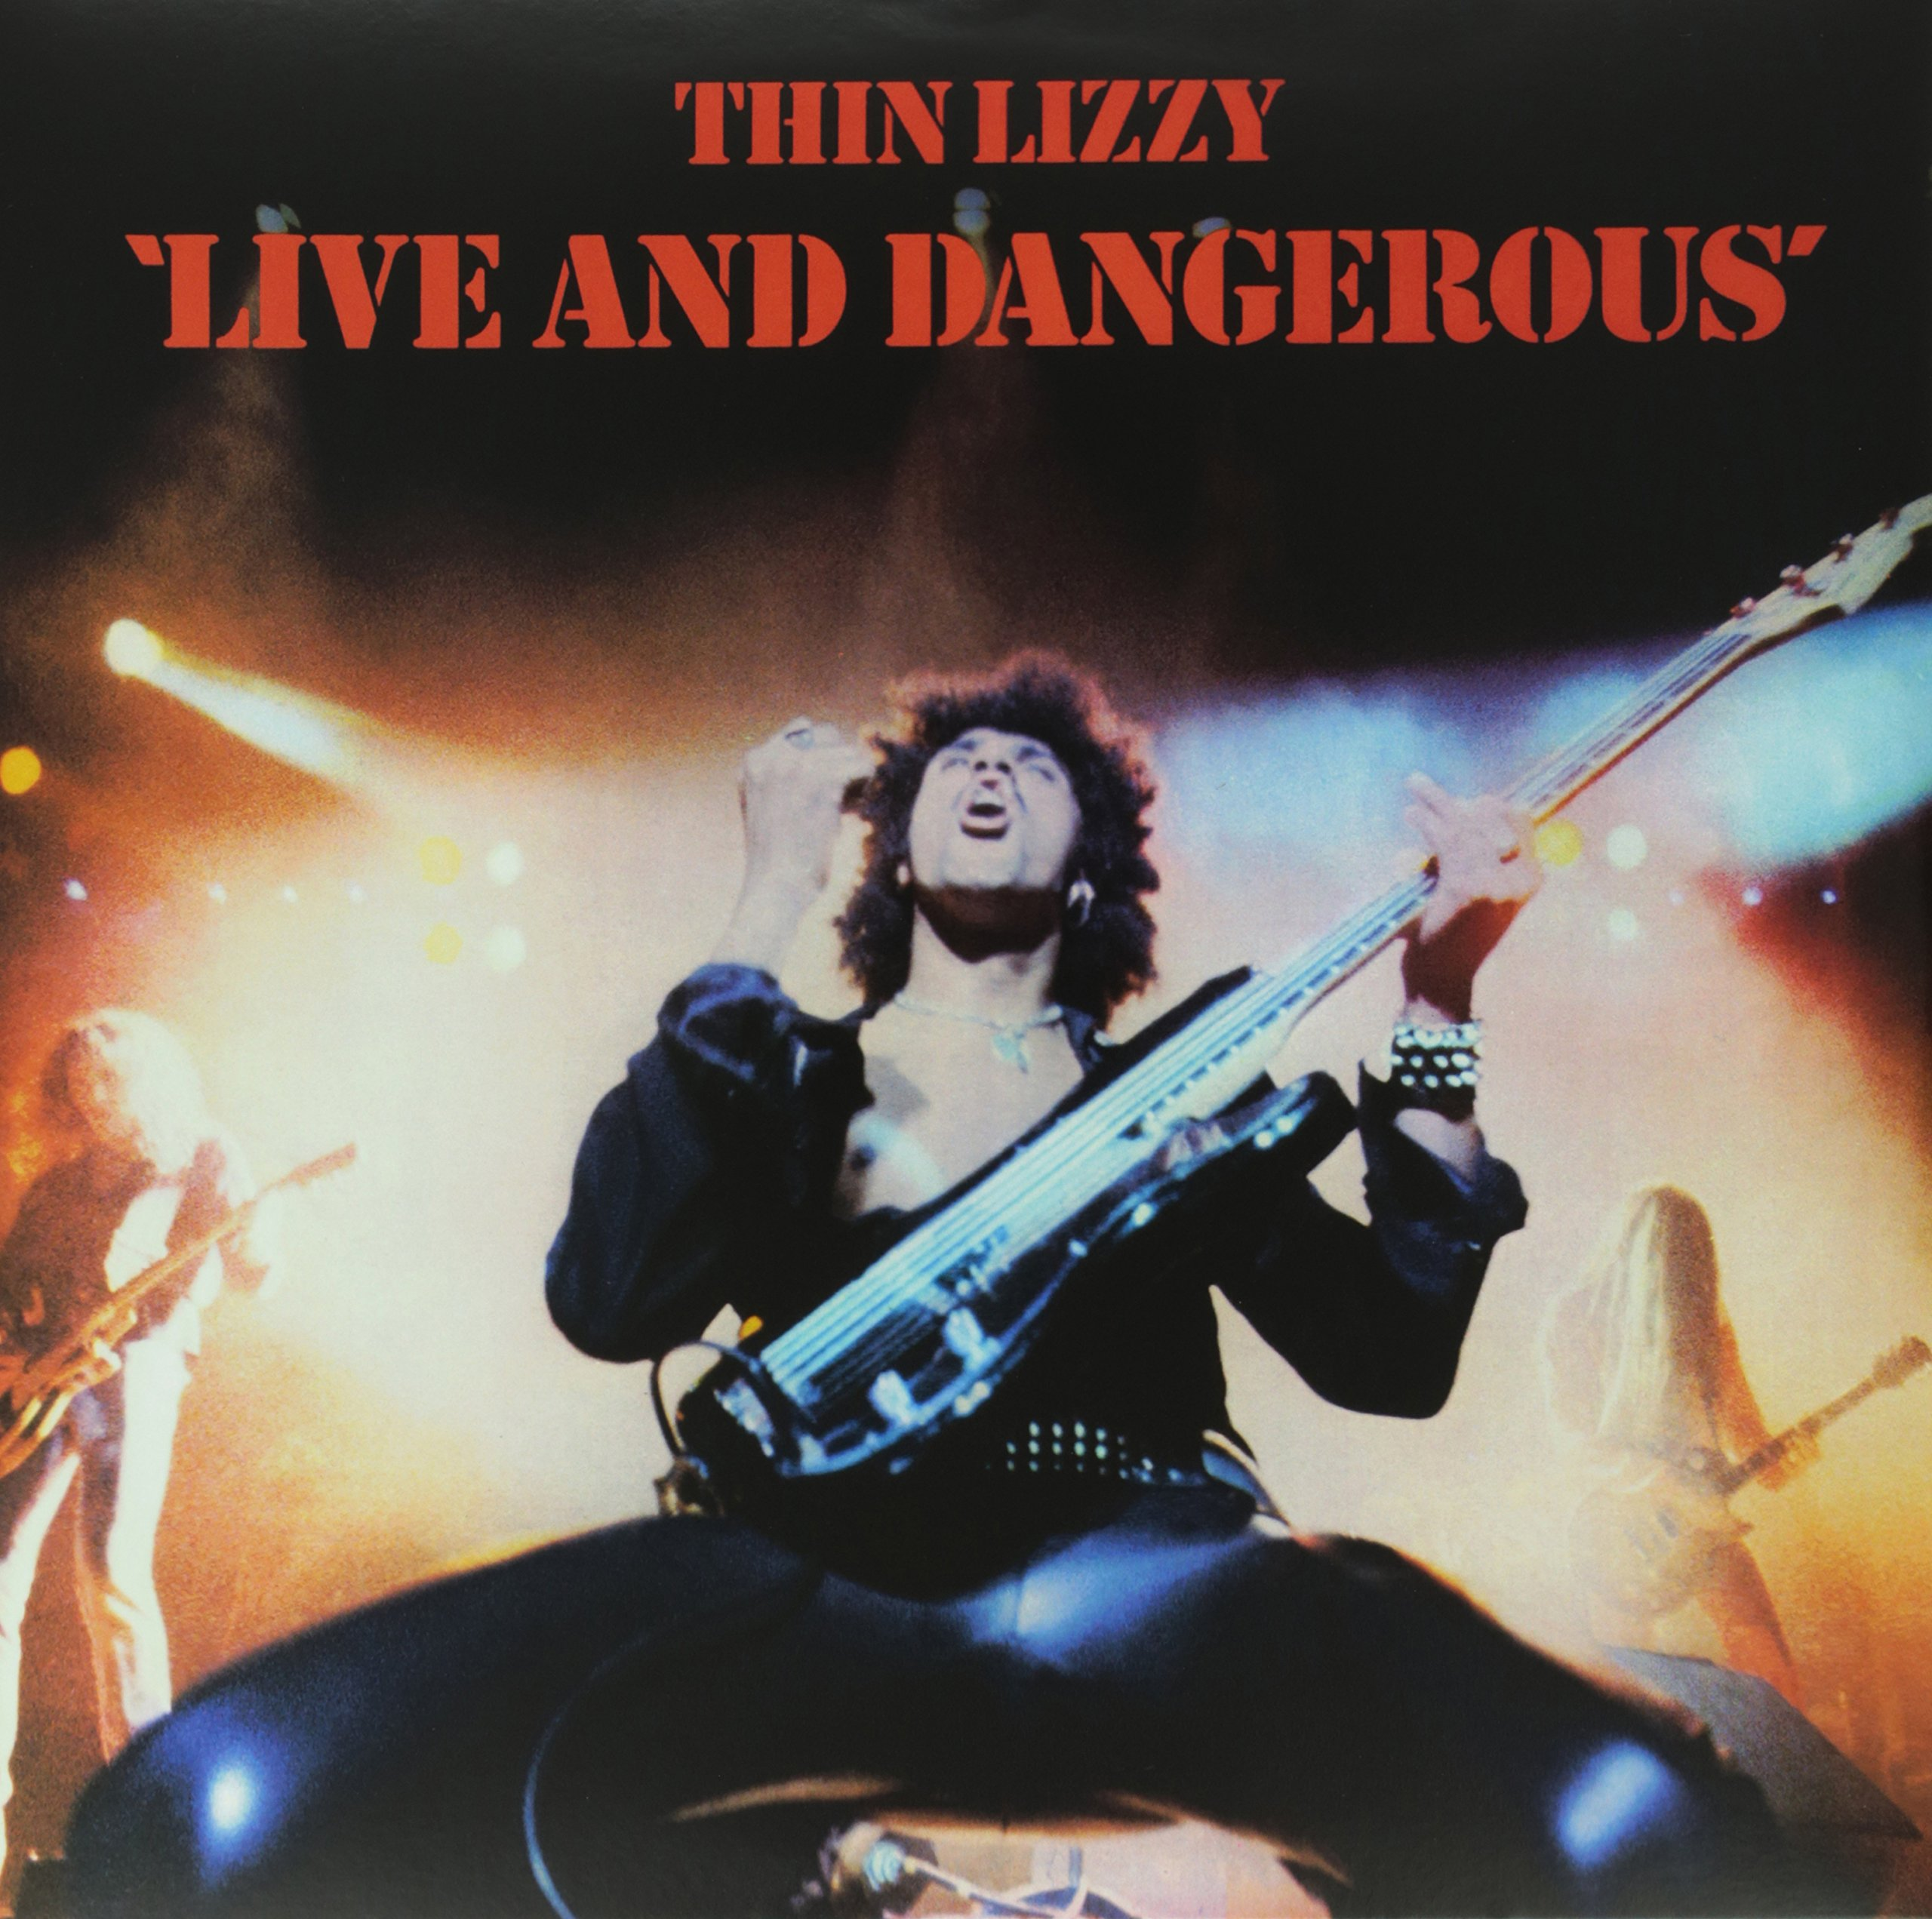 Live And Dangerous (180 Gram Audiophile Vinyl/Anniversary Limited Edition) by VINYL